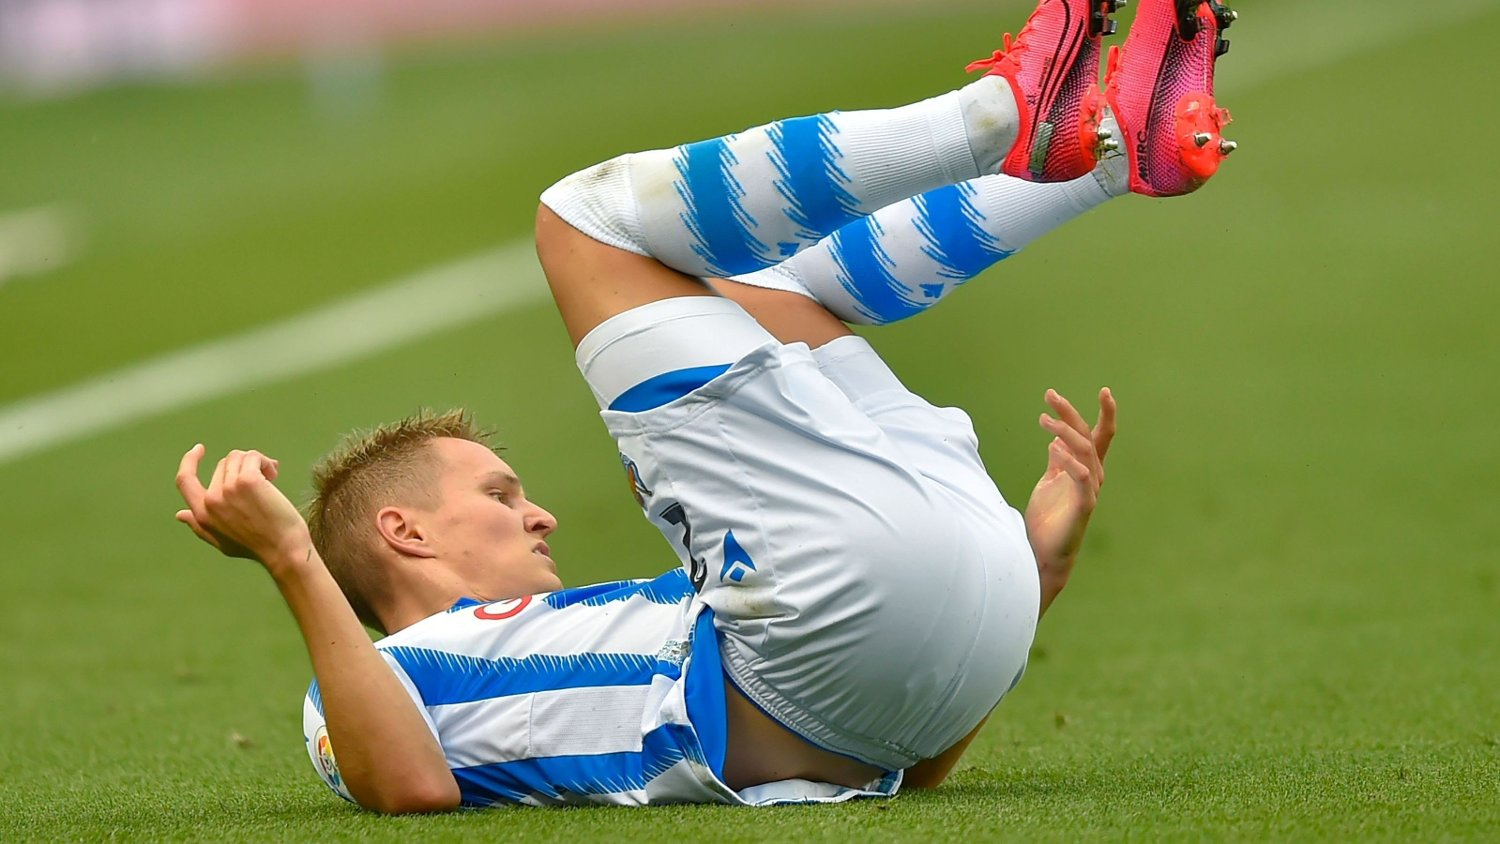 Real Sociedad's Norwegian midfielder Martin Odegaard falls during the Spanish league football match Real Sociedad against RC Celta de Vigo at the Reale Arena-Anoeta stadium in San Sebastian Stadium, on June 24, 2020.